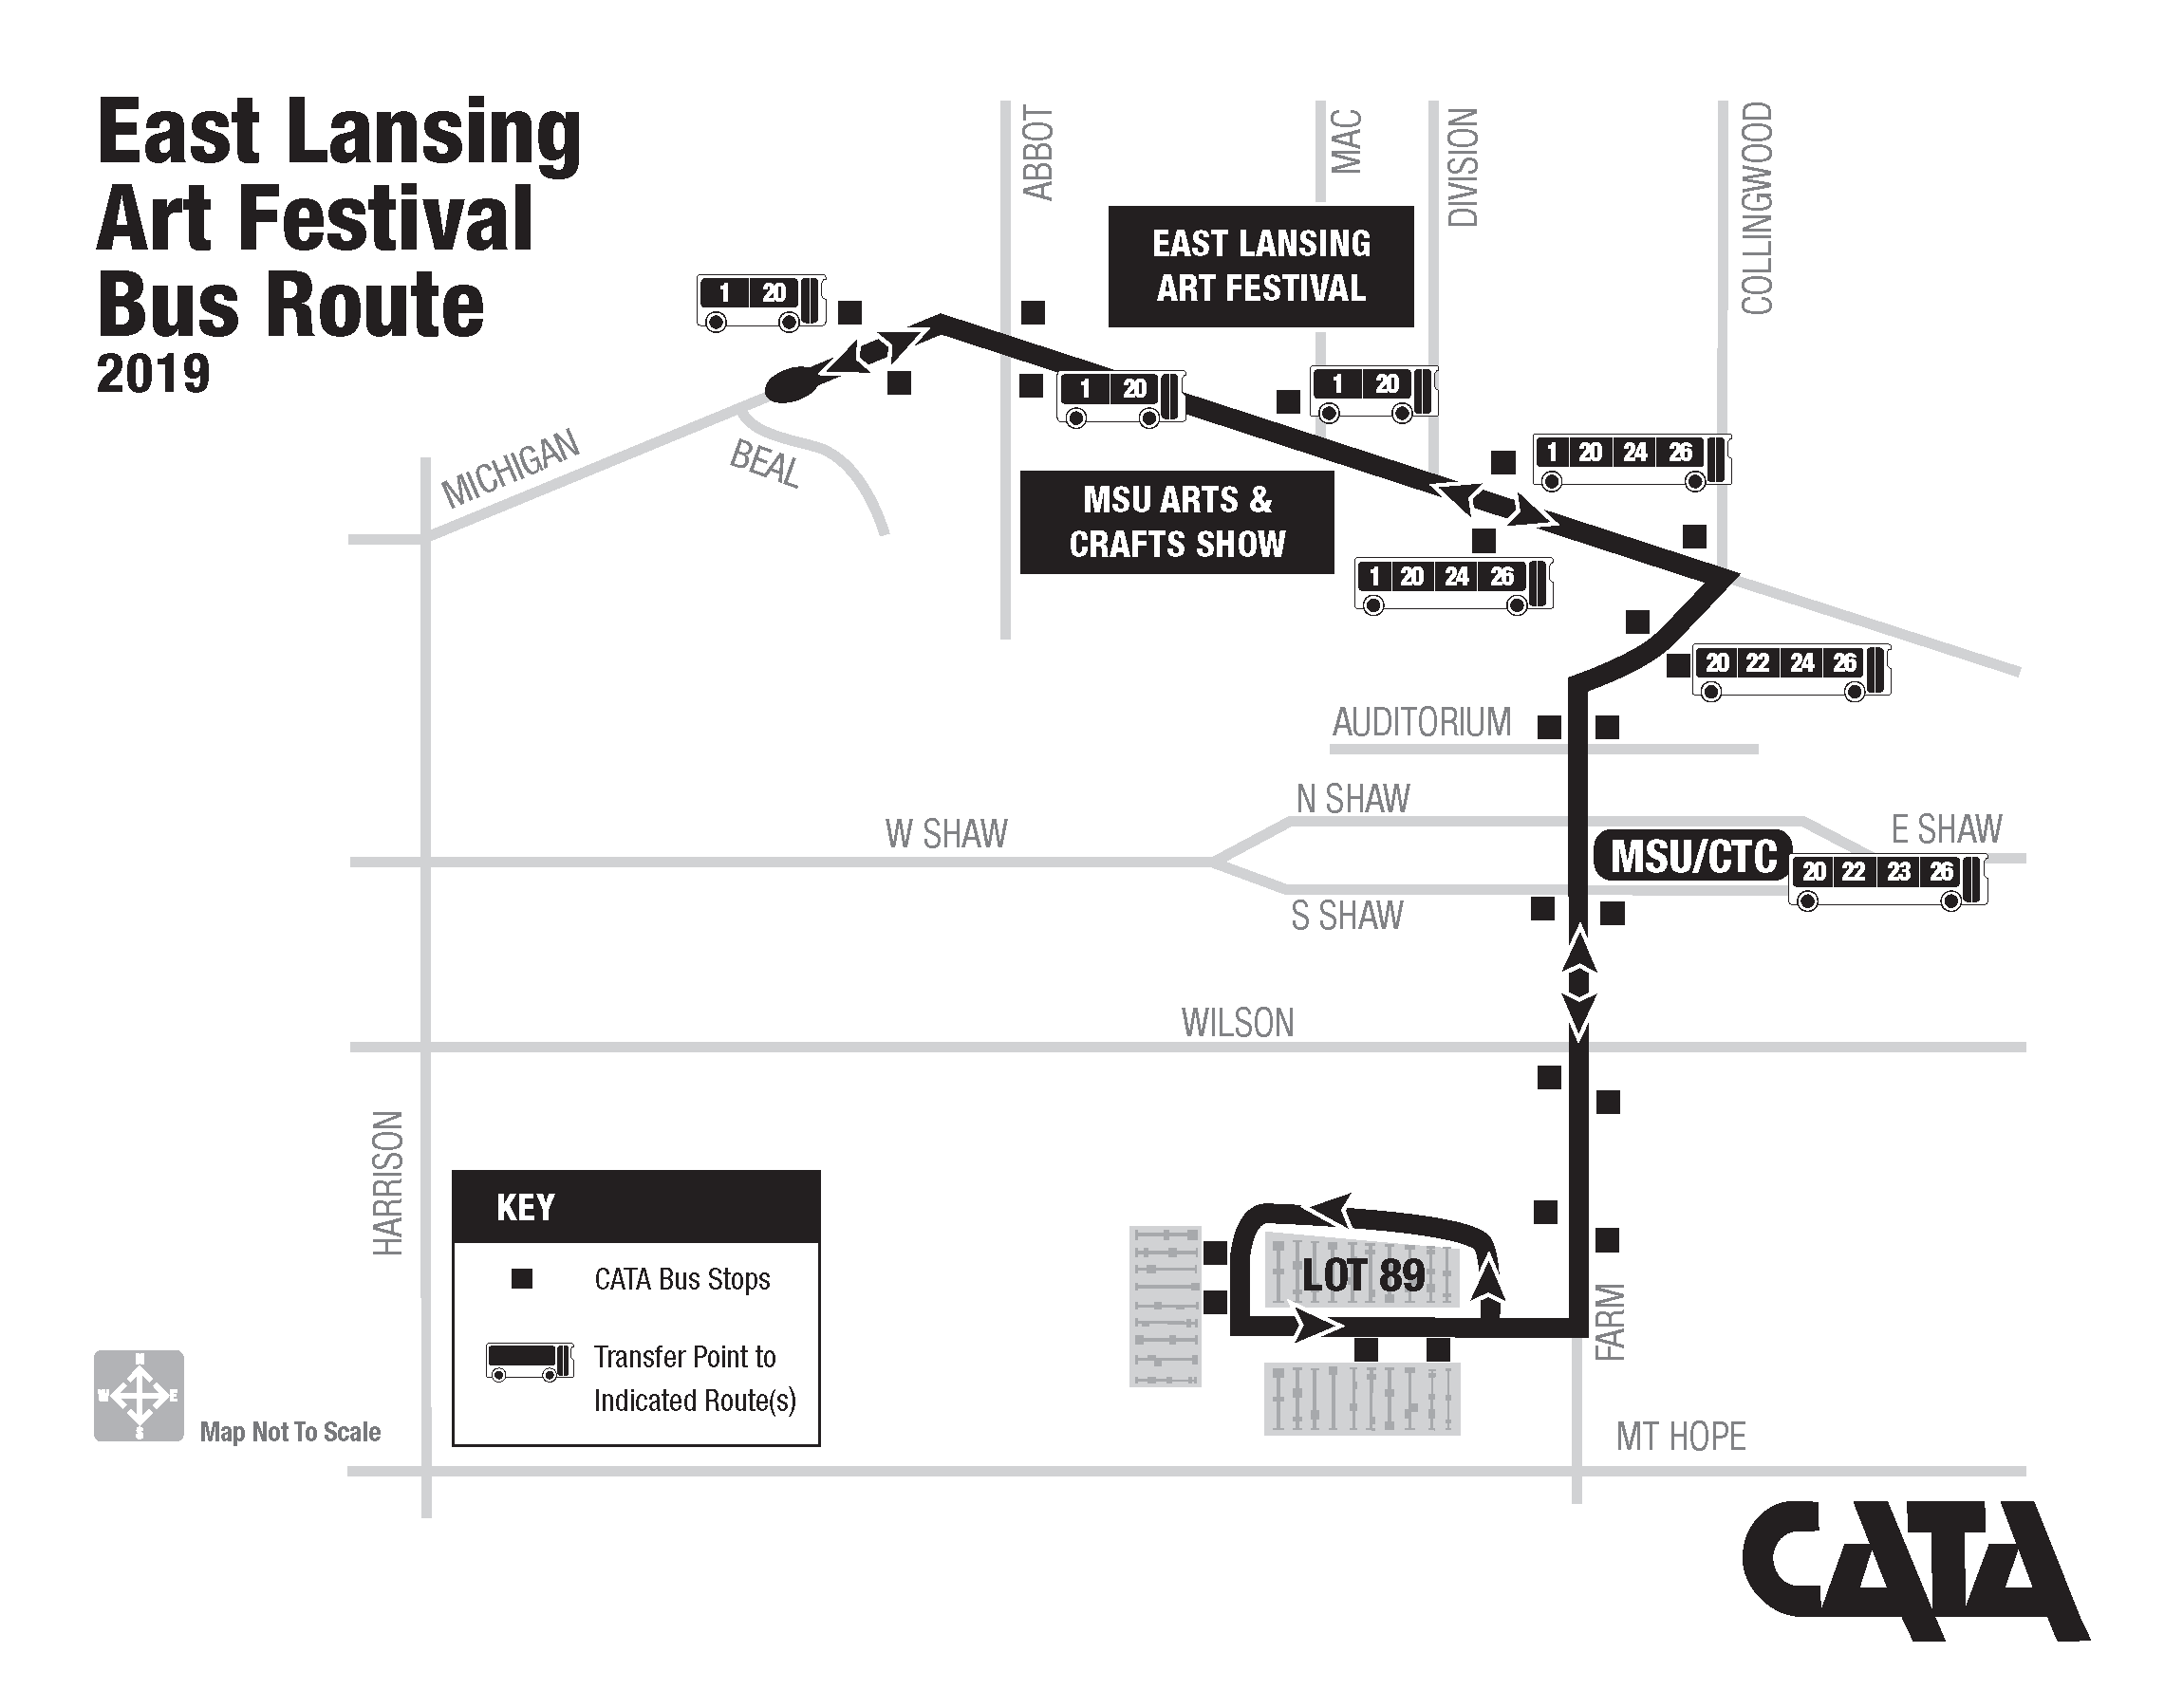 East Lansing Art Festival Bus Route